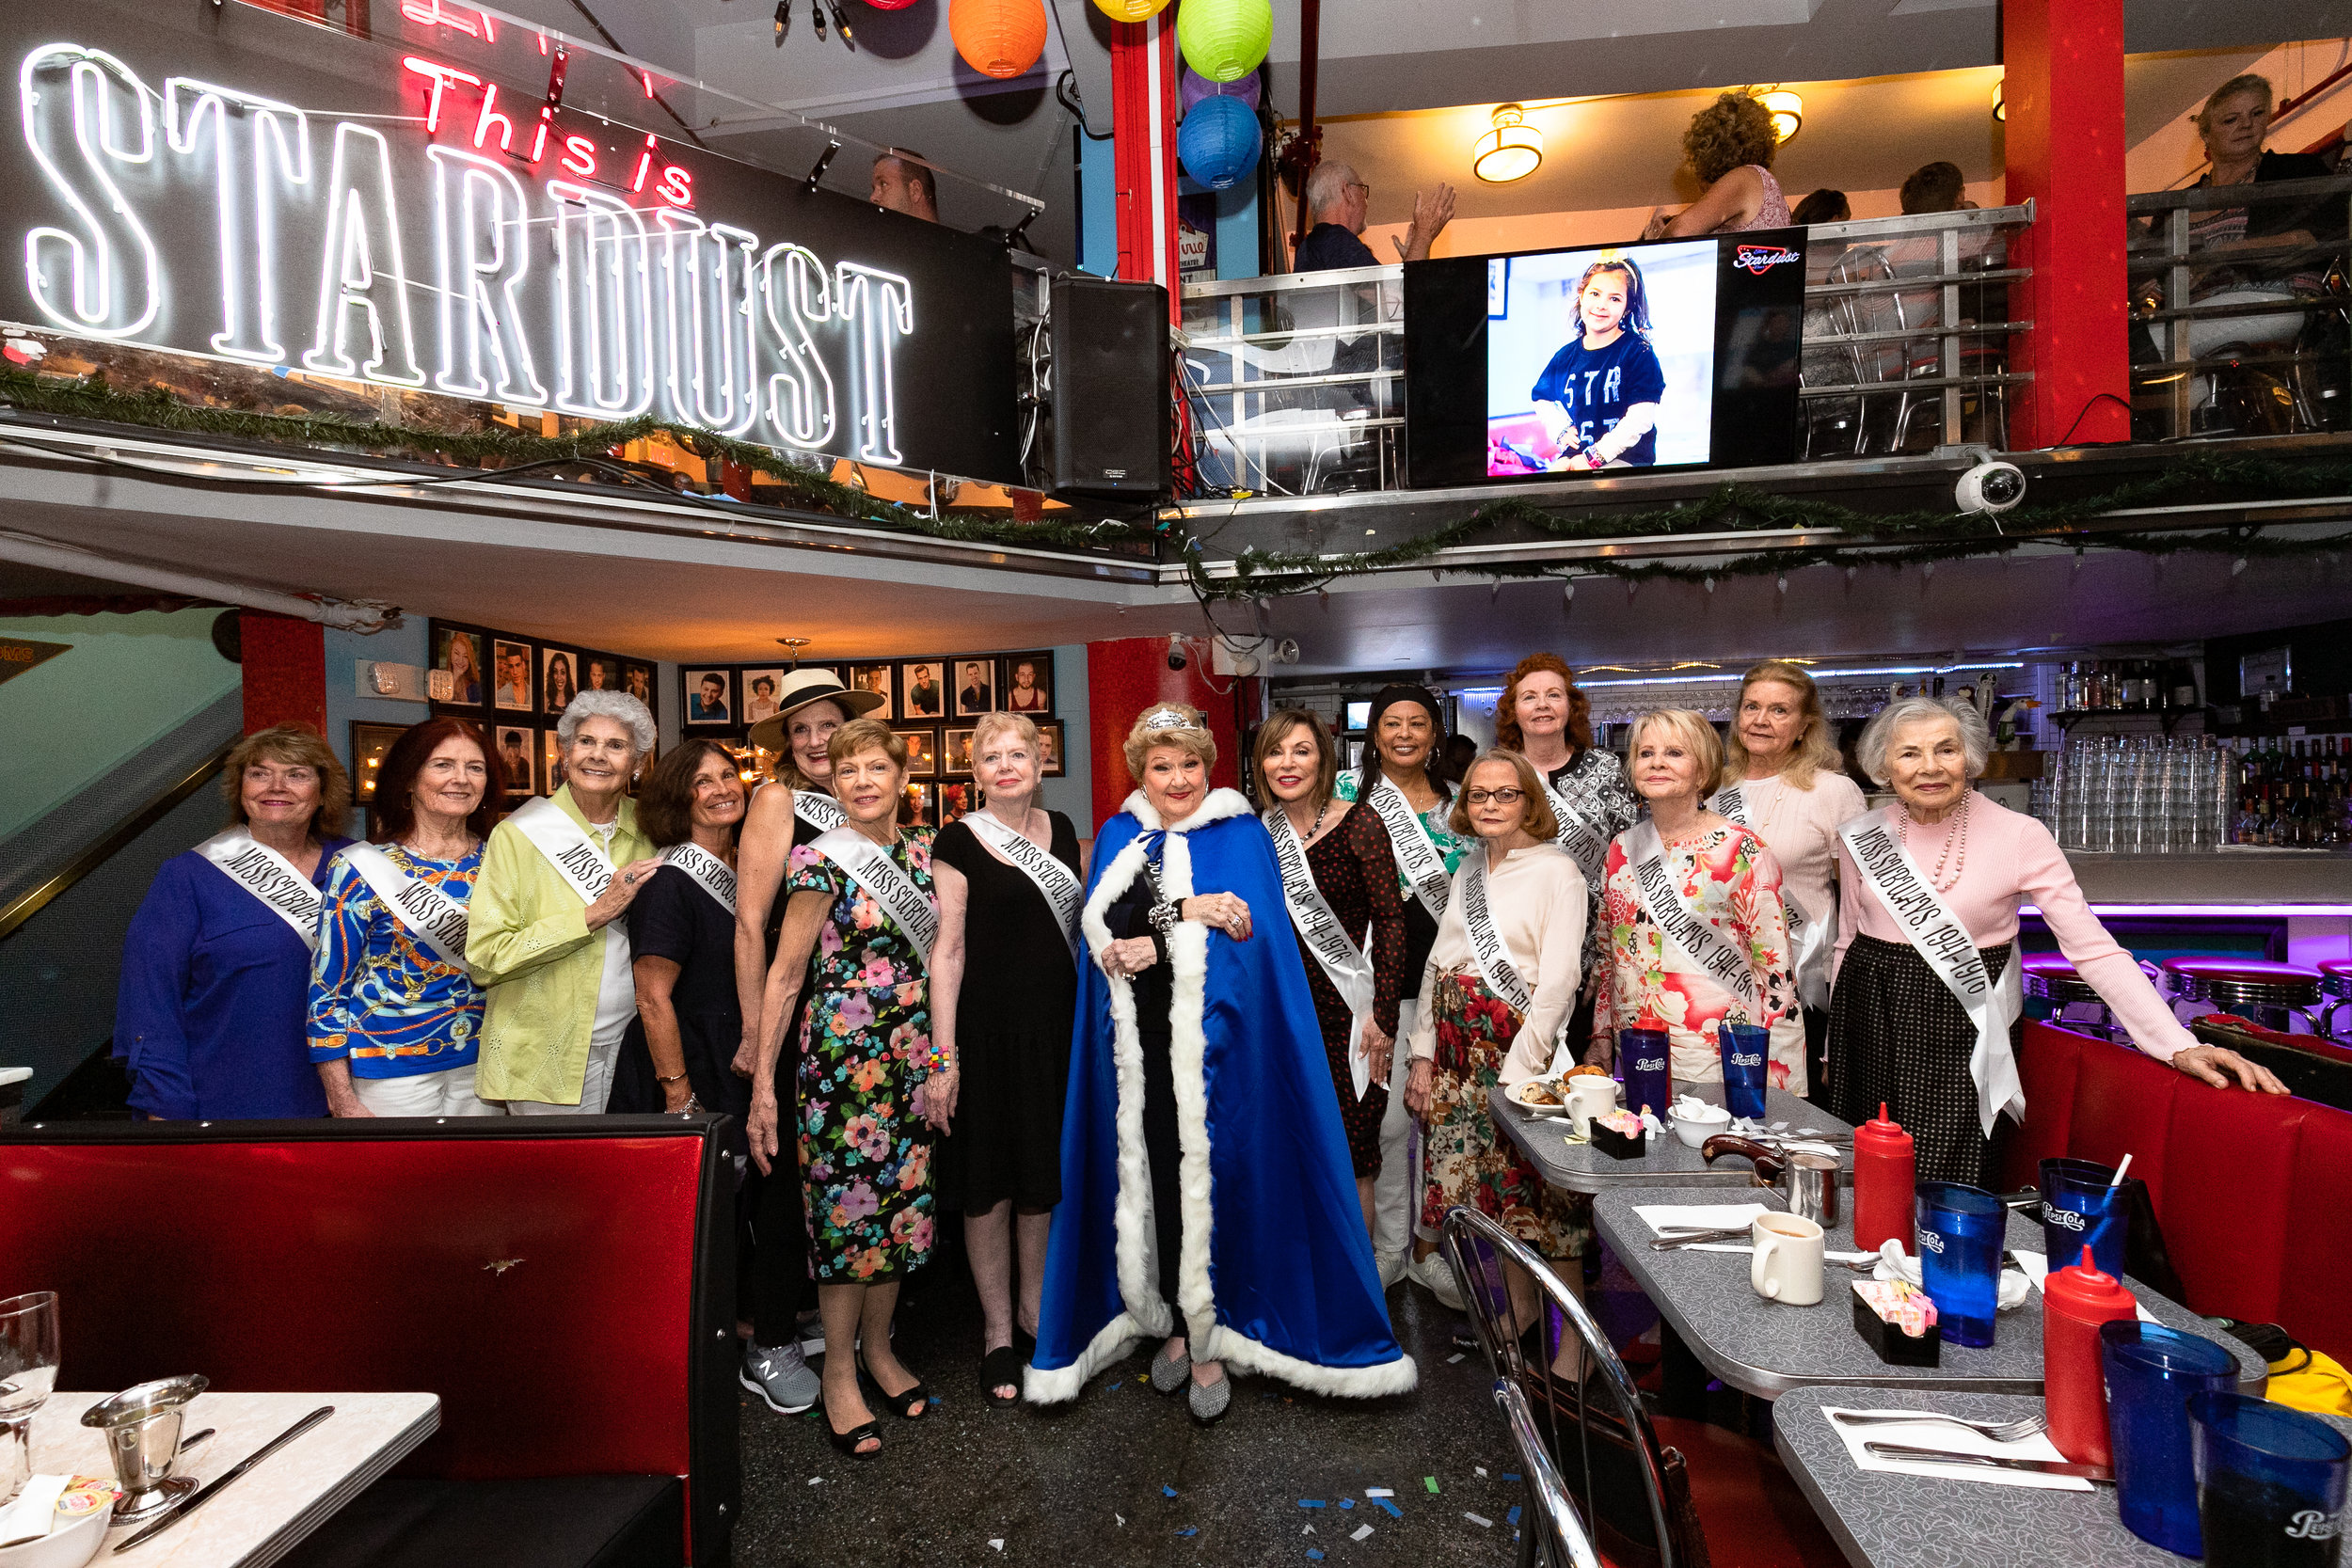 Marilyn Maye  was made an Honorary Miss Subway as the Ladies of New York City's very own beauty contest (1941 - 1976) celebrated with a Reunion at Ellen's Stardust Diner hosted by owner Ellen Hart (Miss Subway 1959). All of these wonderful women are absolute proof that Beauty is Ageless!